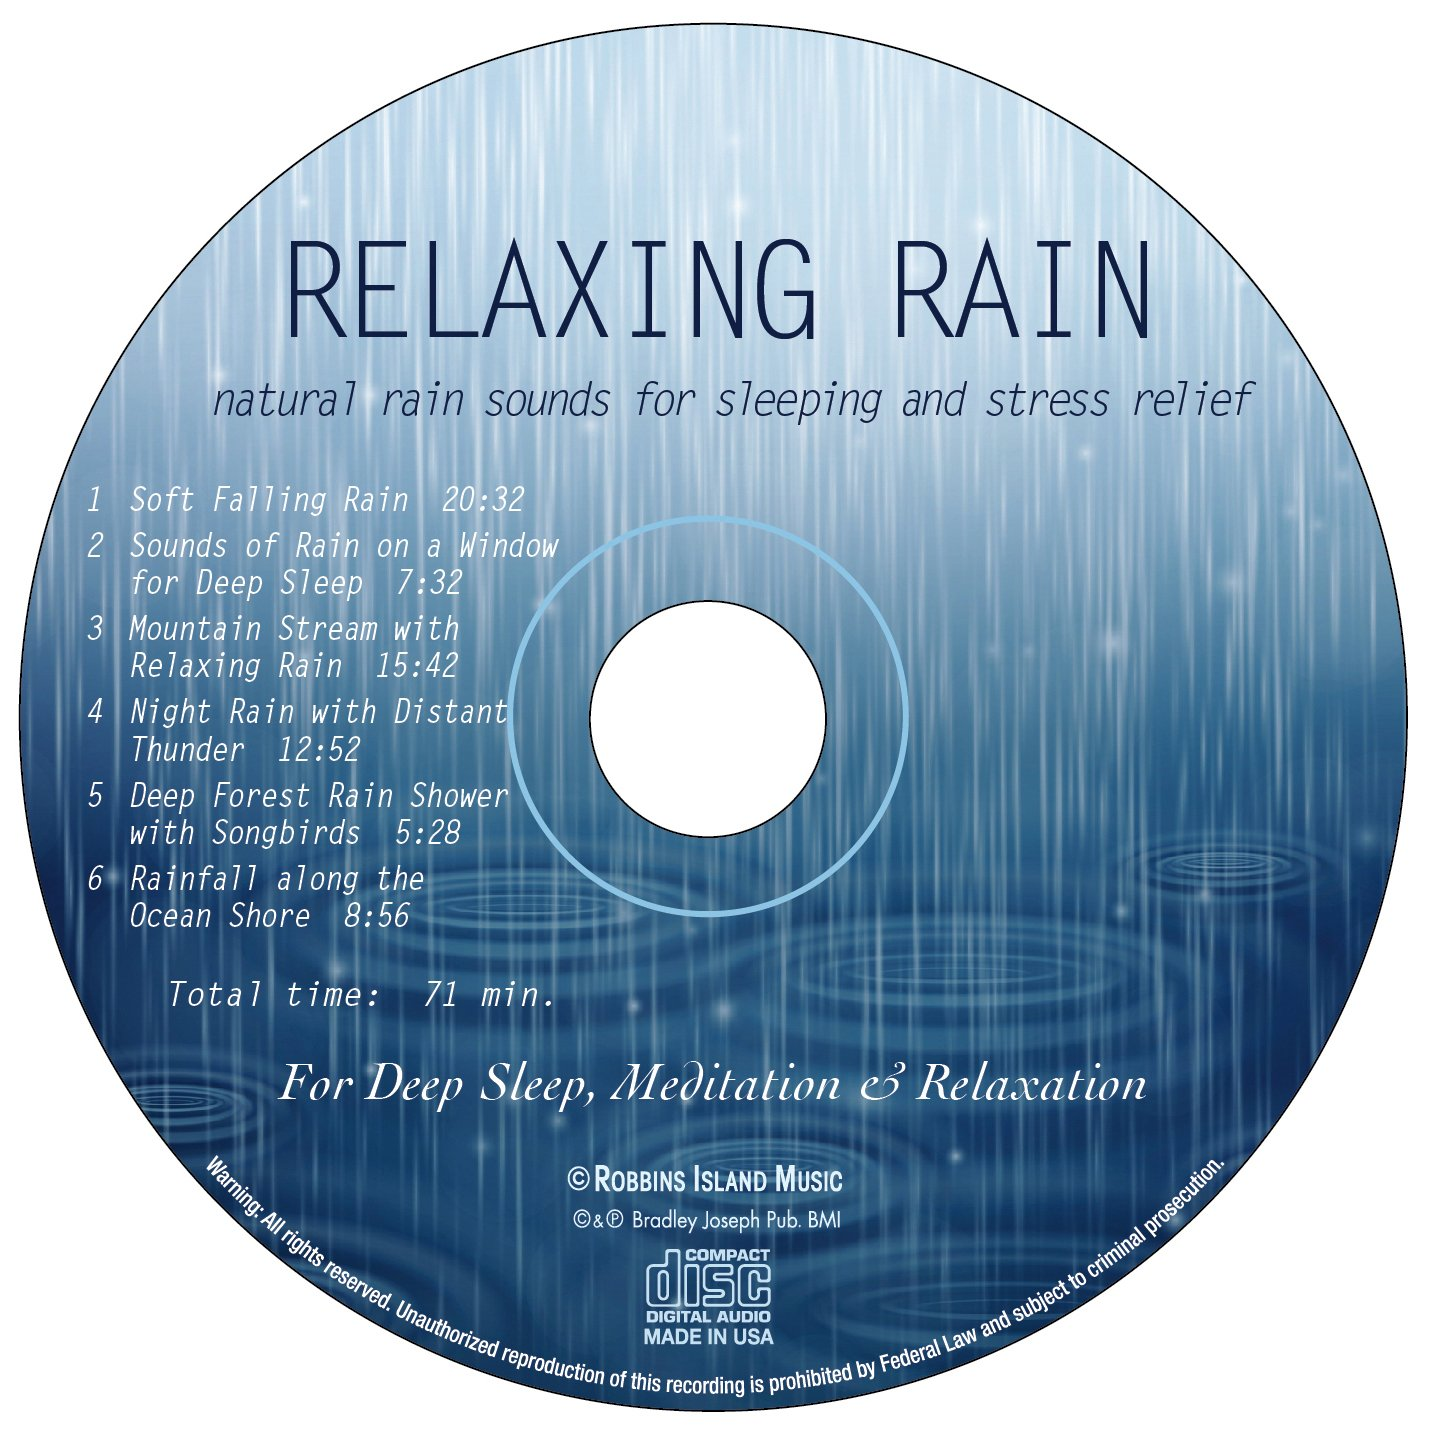 Stress less coloring by the shore - Rest Relax Nature Artist Series Relaxing Rain Natural Rain Sounds For Sleeping And Stress Relief Nature Sounds Deep Sleep Music Meditation